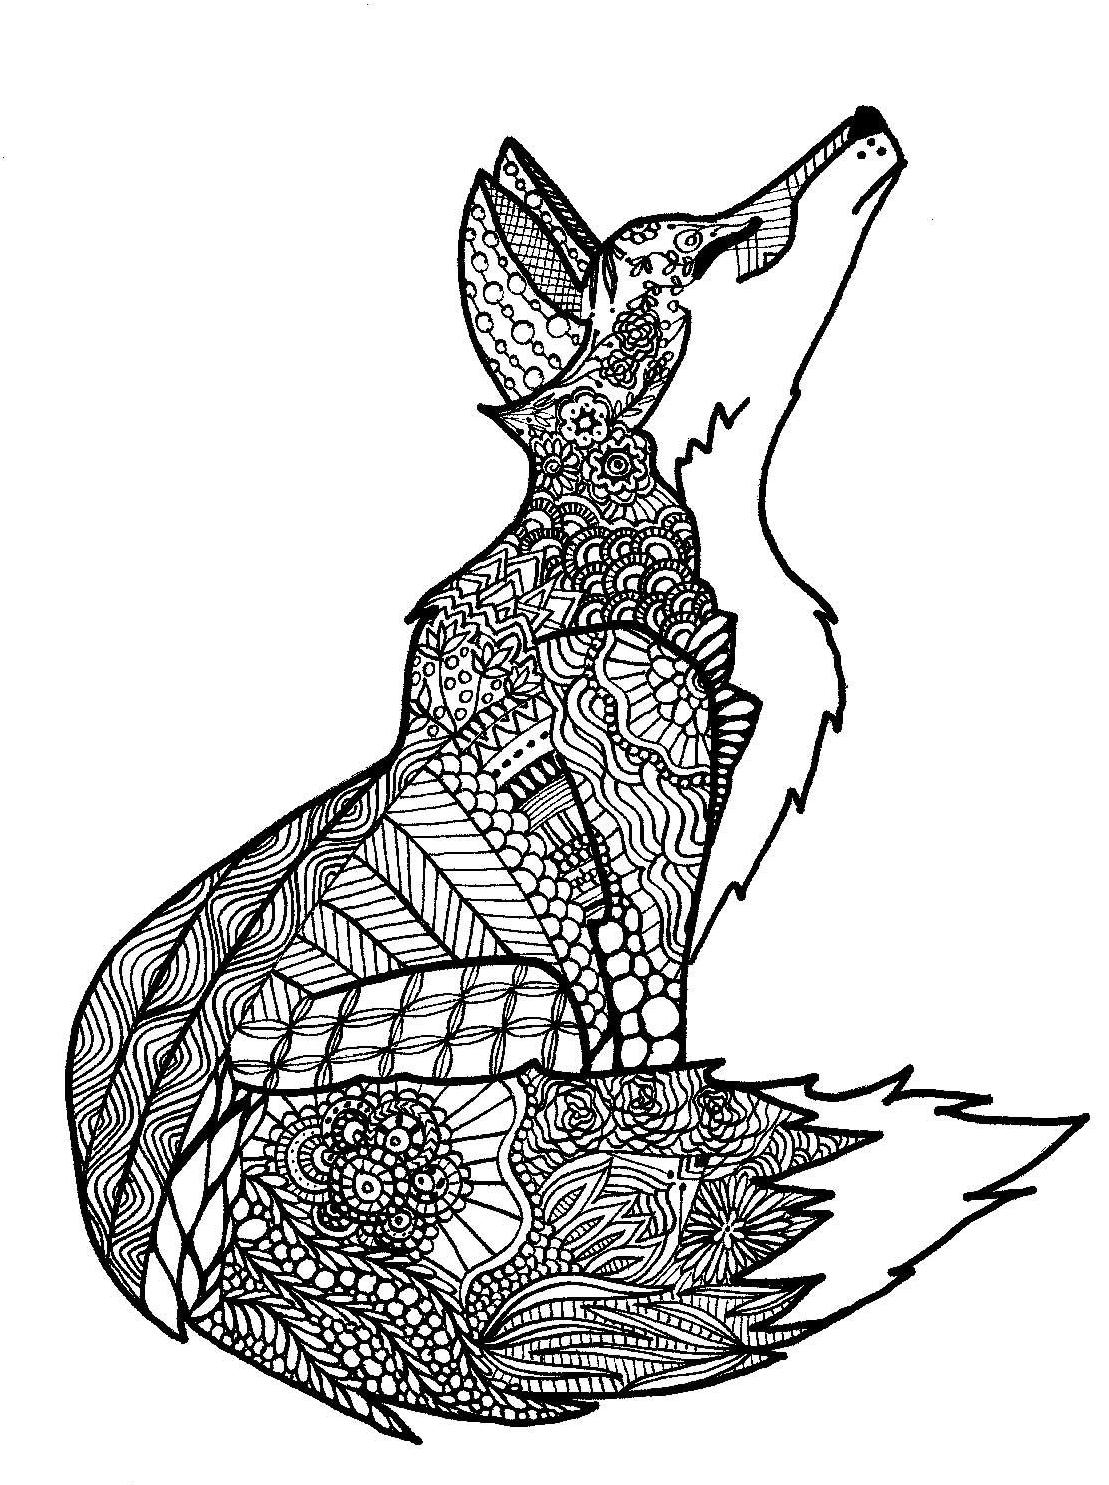 Kearney Womans Zentangle Coloring Book Stems From Her